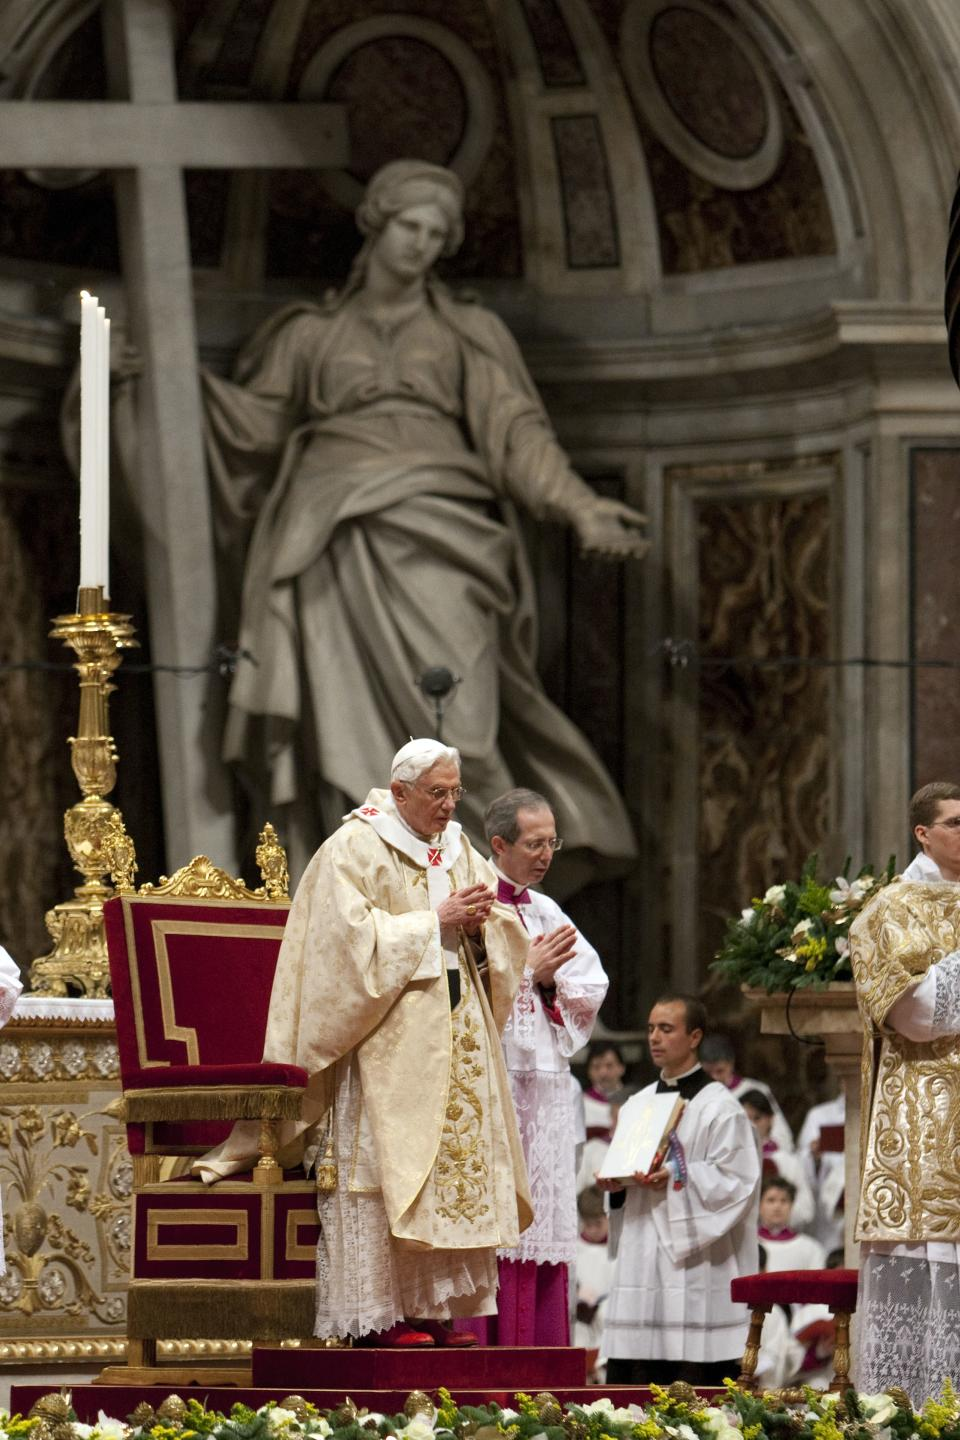 Pope Benedict XVI celebrates Christmas Mass in St. Peter's Basilica at the Vatican, Saturday, Dec. 24, 2011. (AP Photo/Andrew Medichini)